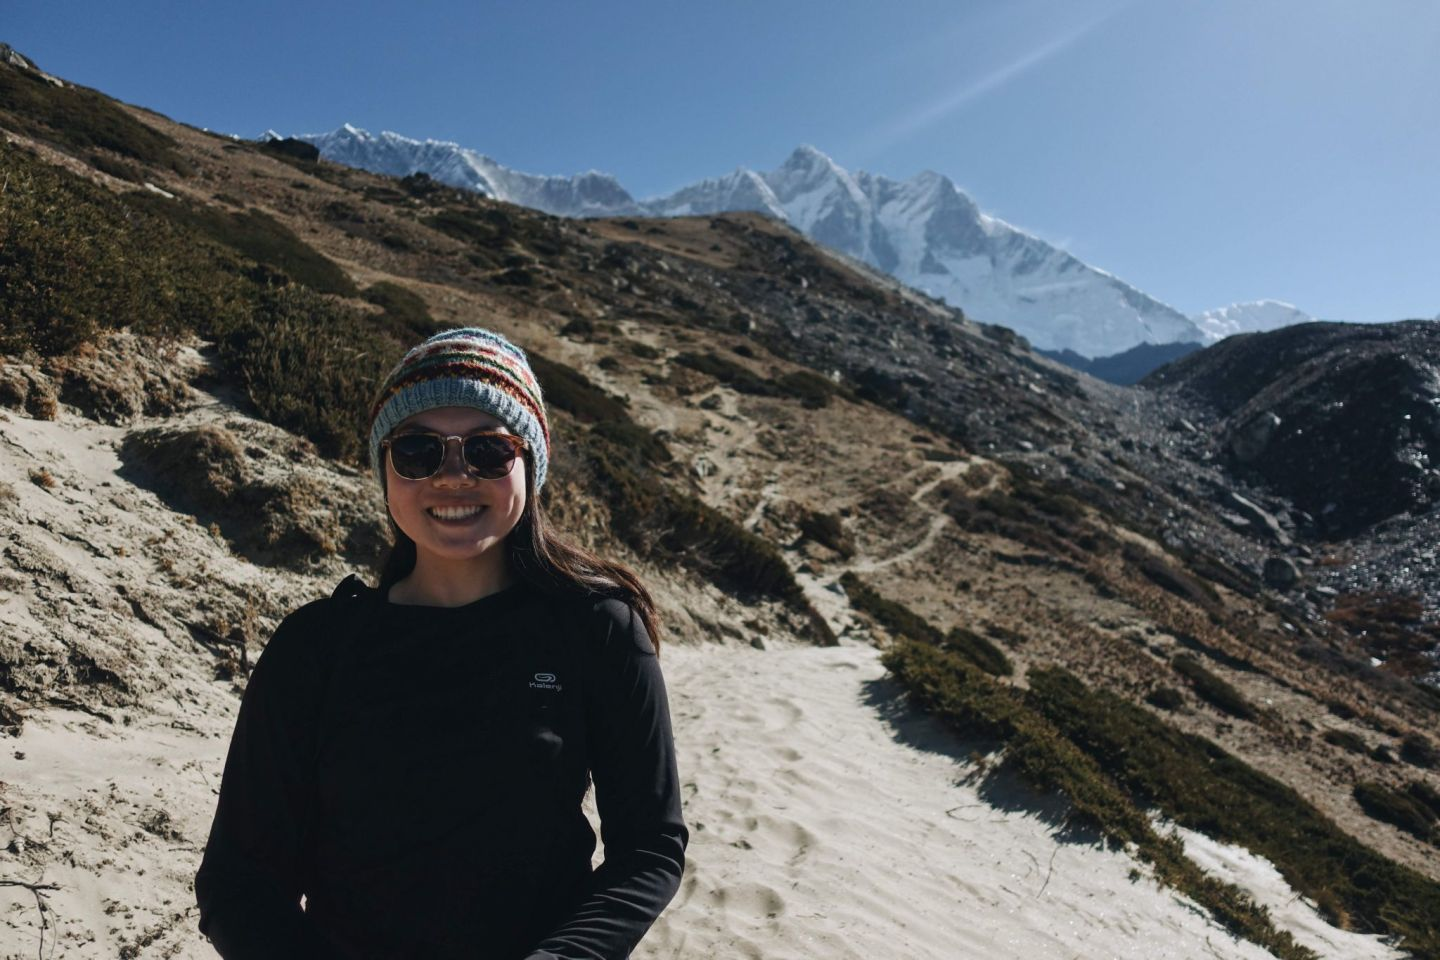 Conquering the Everest Three Passes Trek in Nepal (Interview)